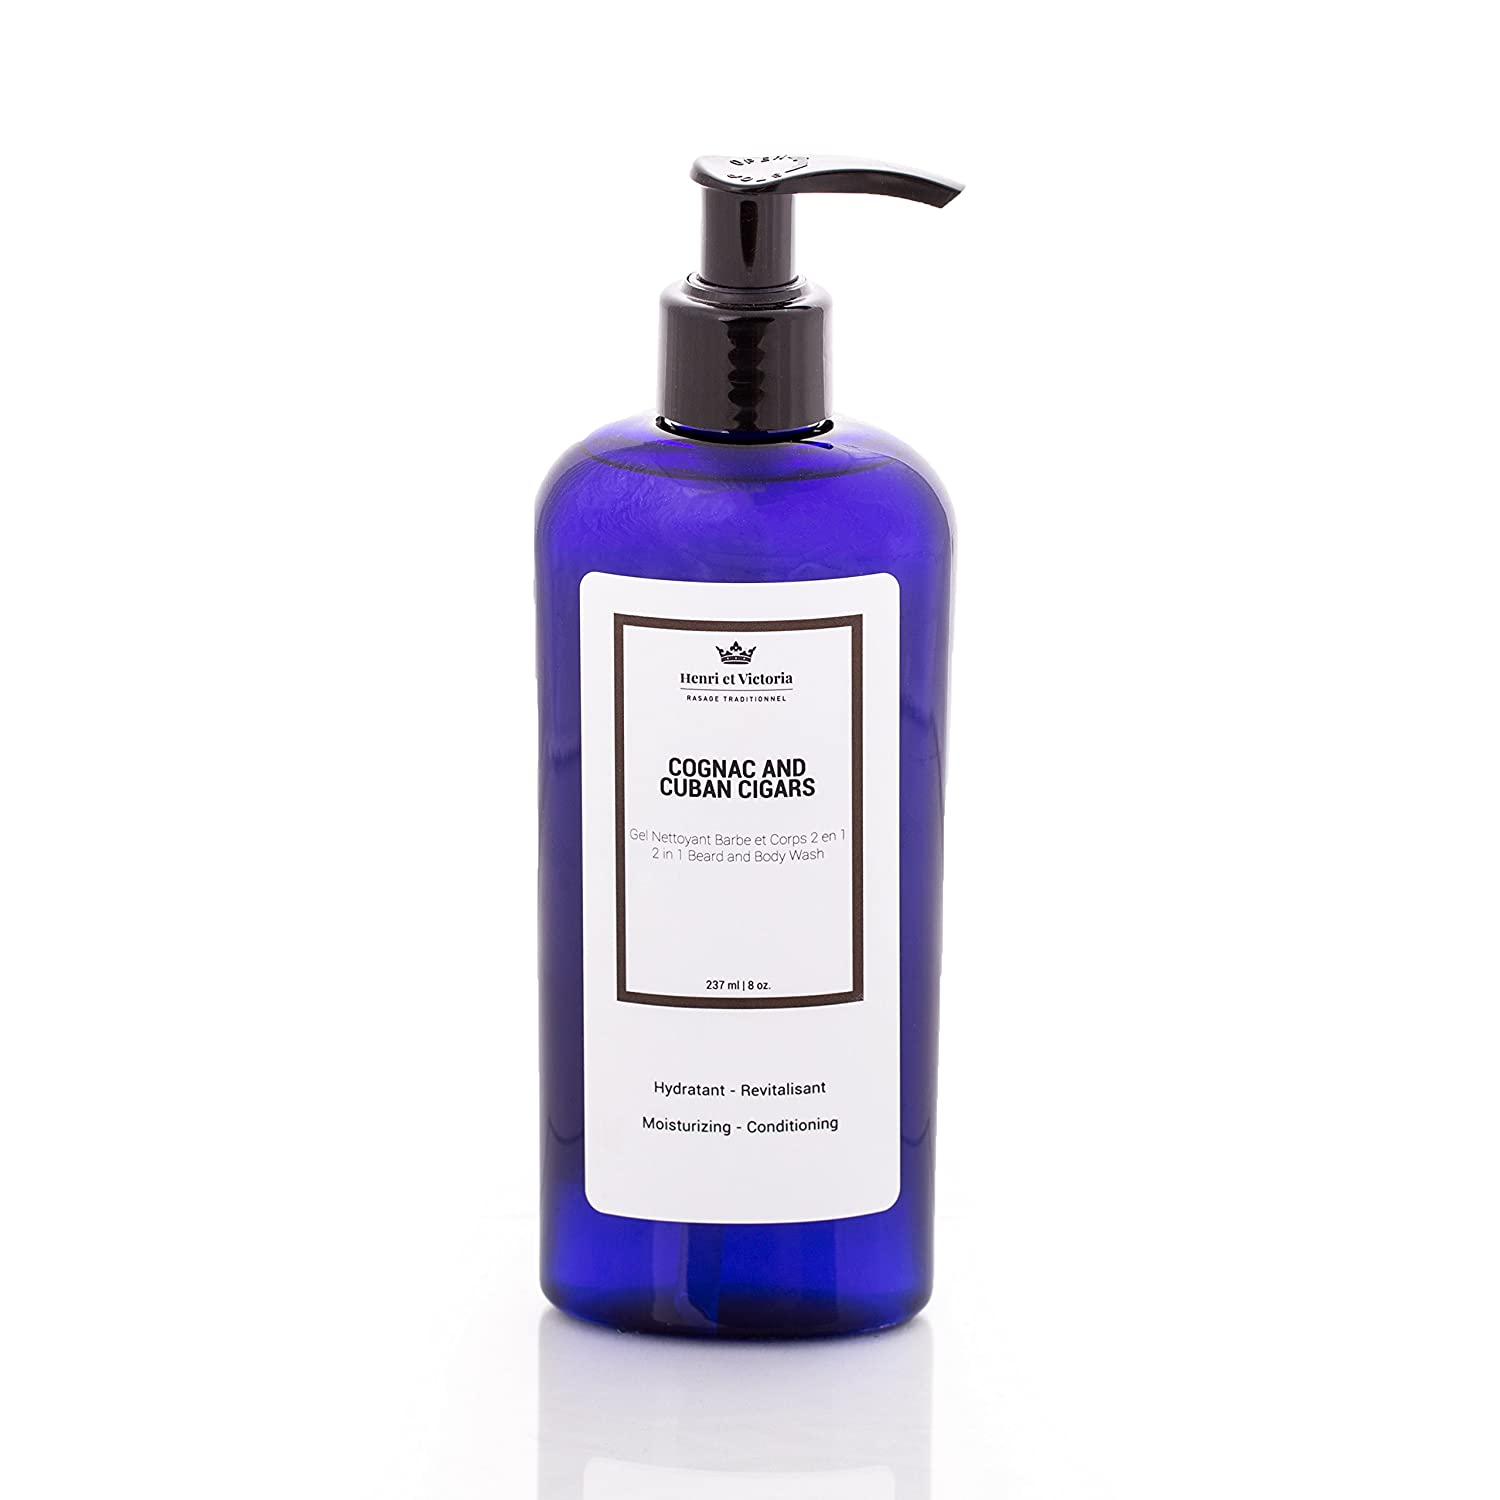 Cognac and Cuban Cigars Beard Wash Body Wash For Men | Hand Made in CANADA by Henri et Victoria | Moisturizing and soothing | 8oz Henri et Victoria inc